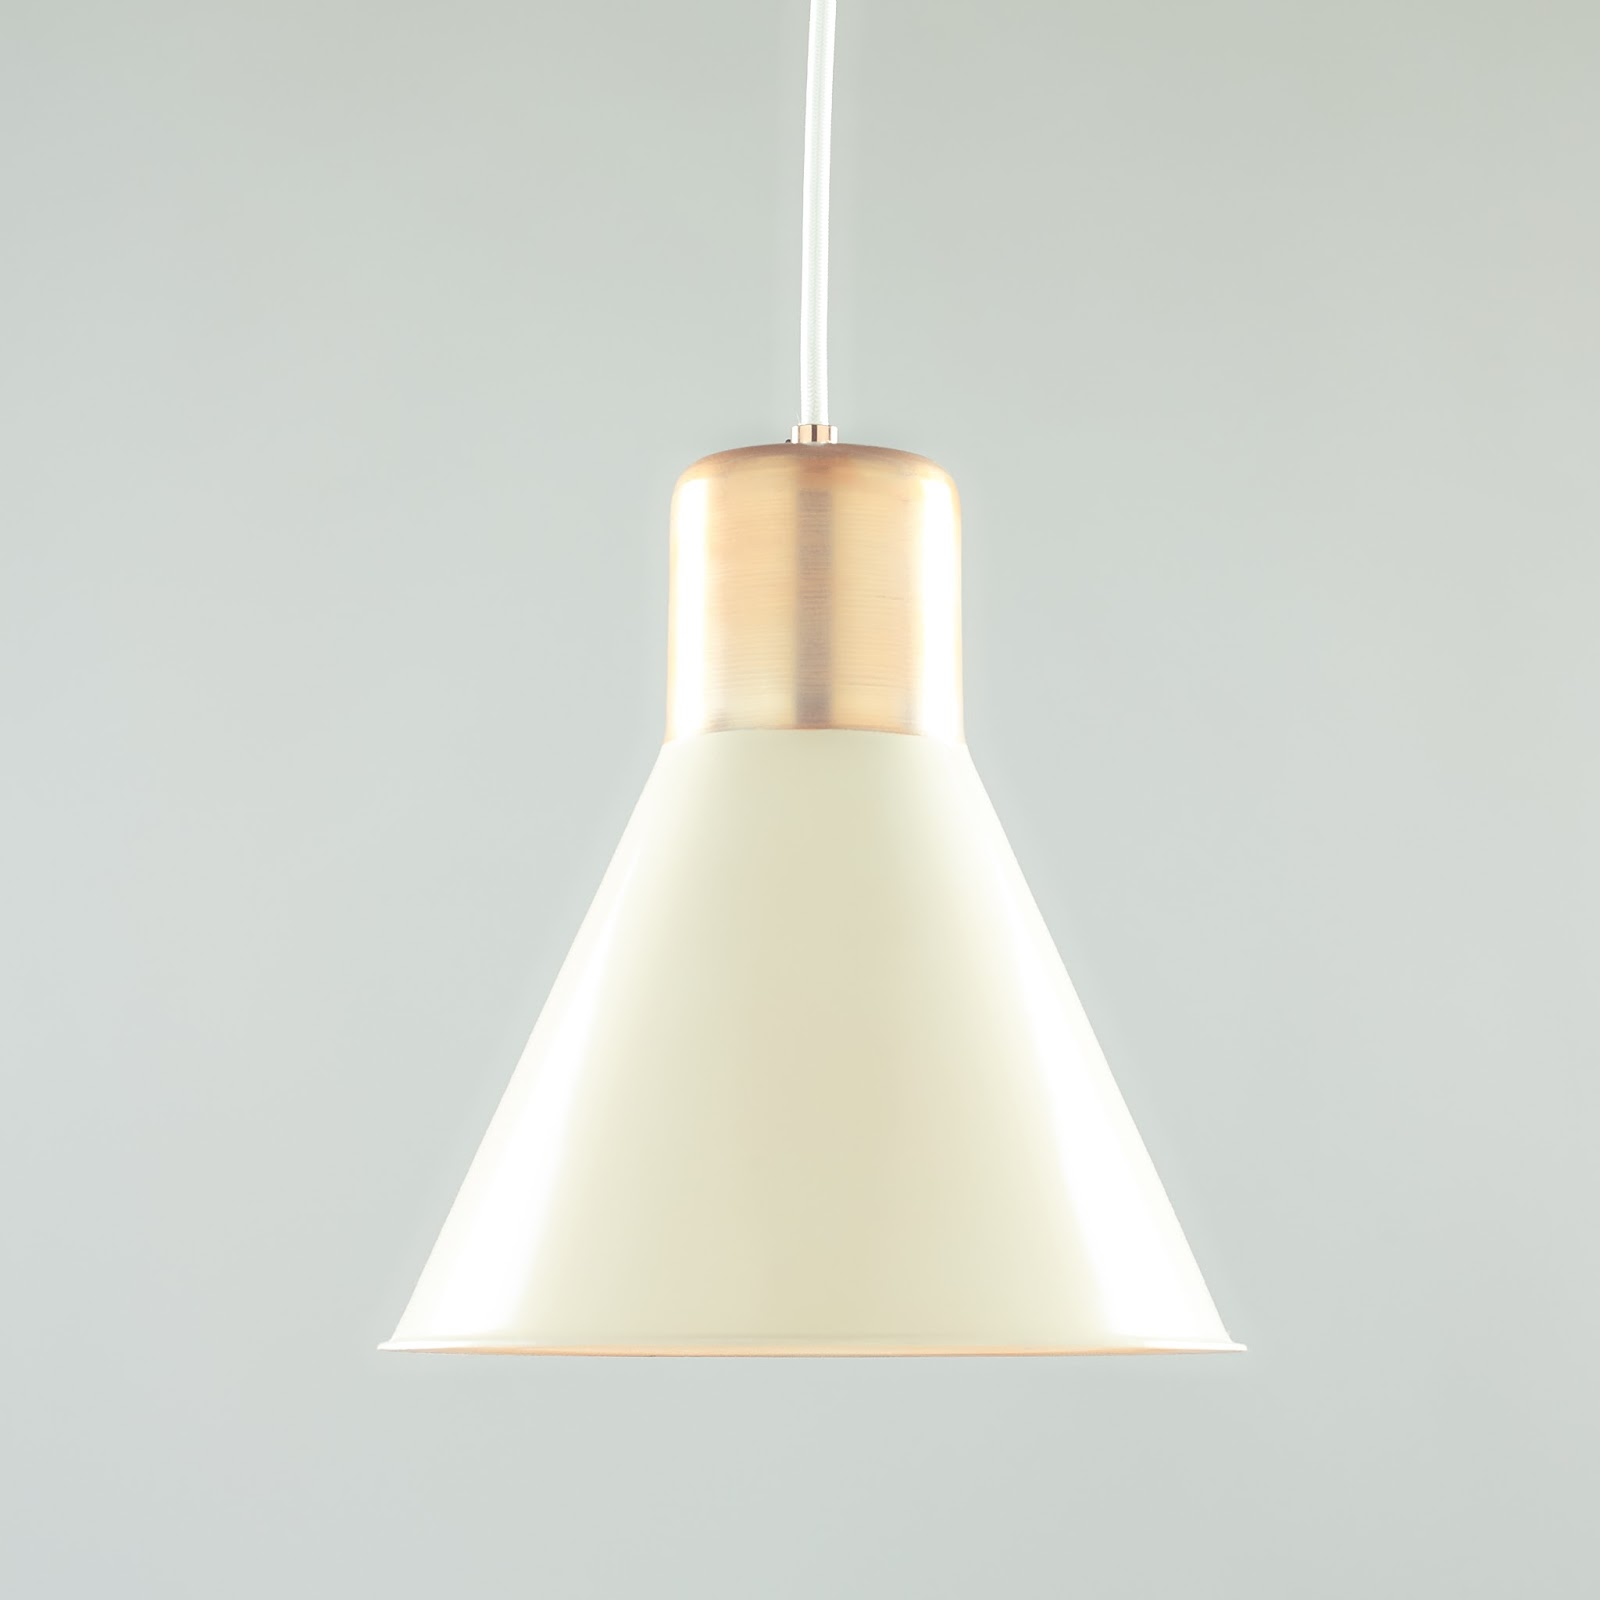 Luminaire authentik industriel et contemporain nana for Luminaire contemporain